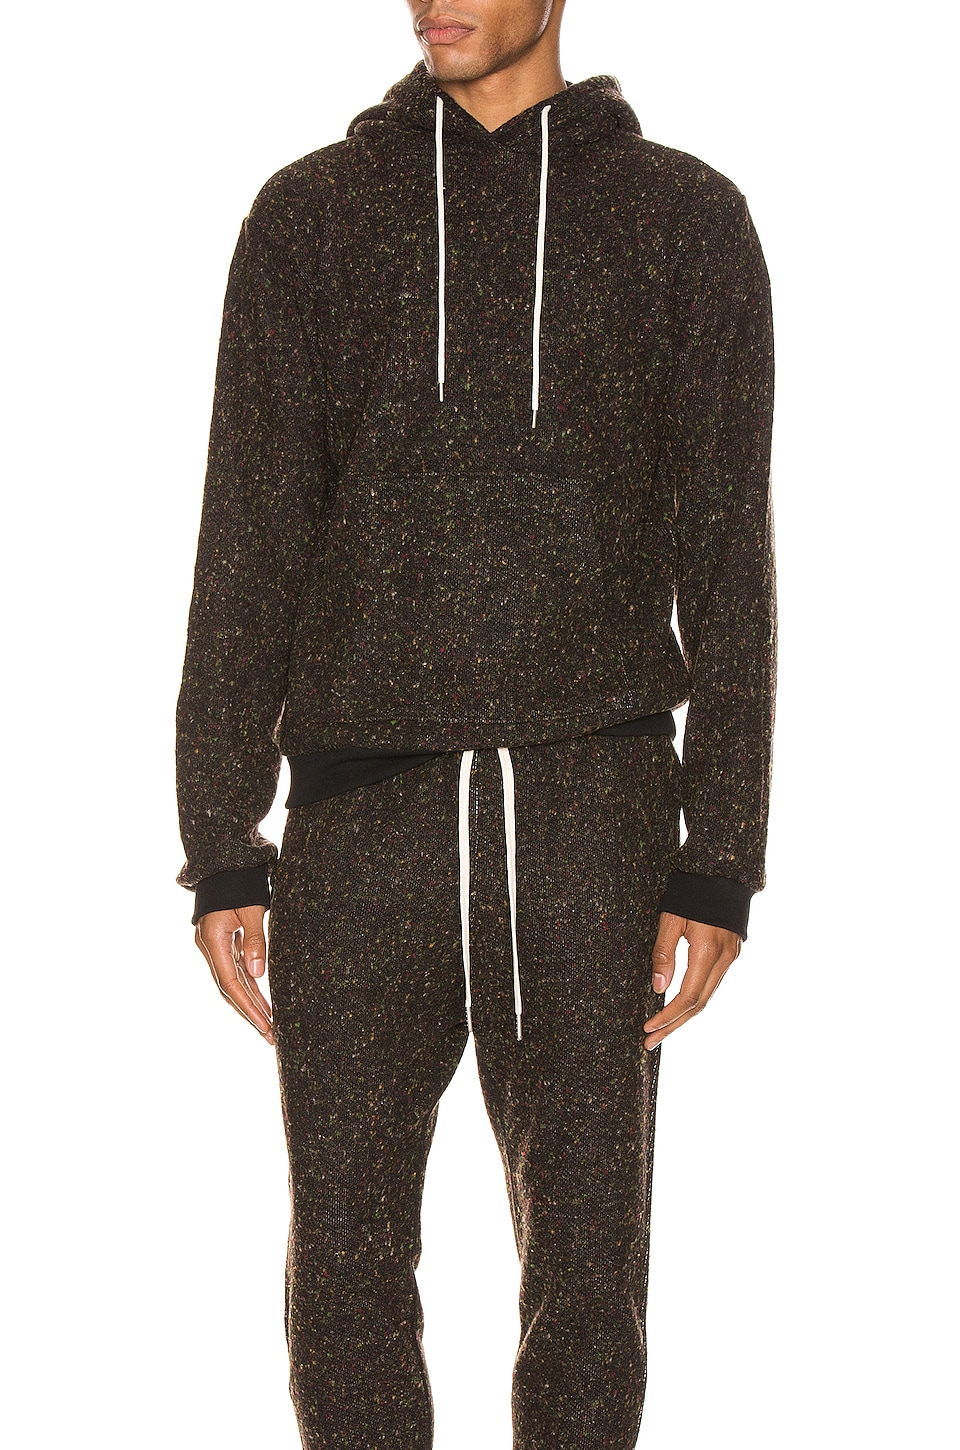 John Elliott Accessories Fireside Beach Hoodie